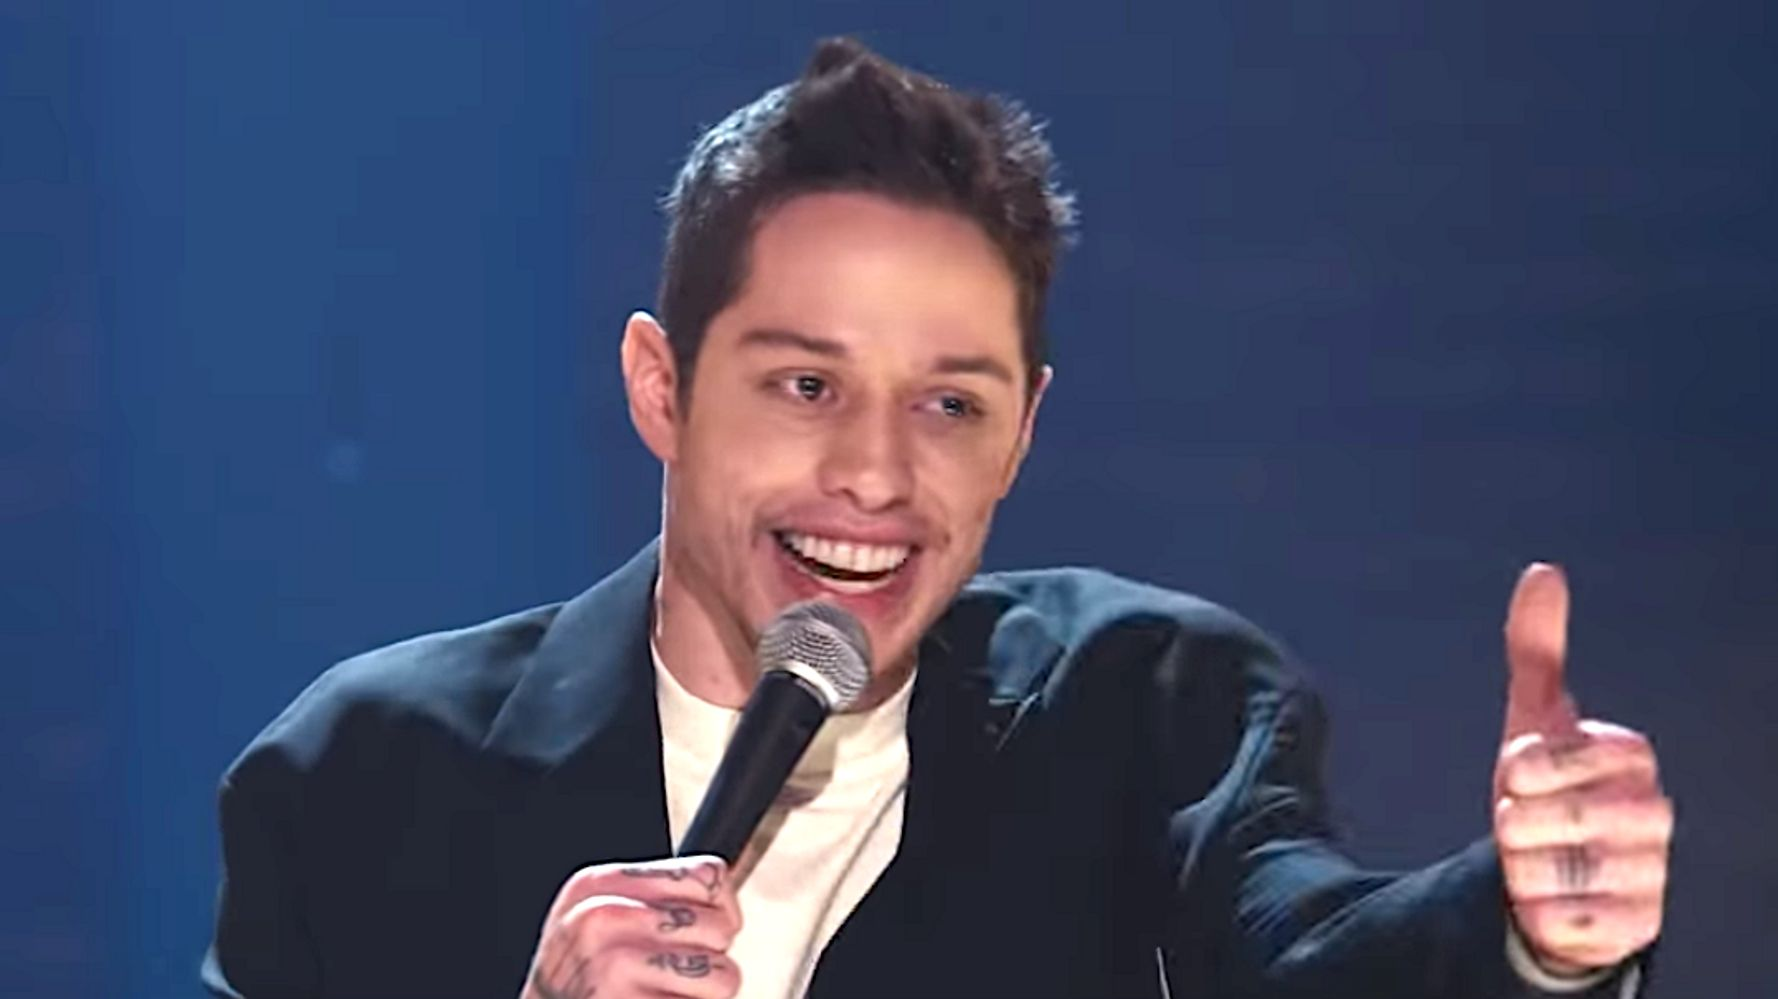 Pete Davidson Basically Rescinds Apology To Dan Crenshaw In Netflix Special